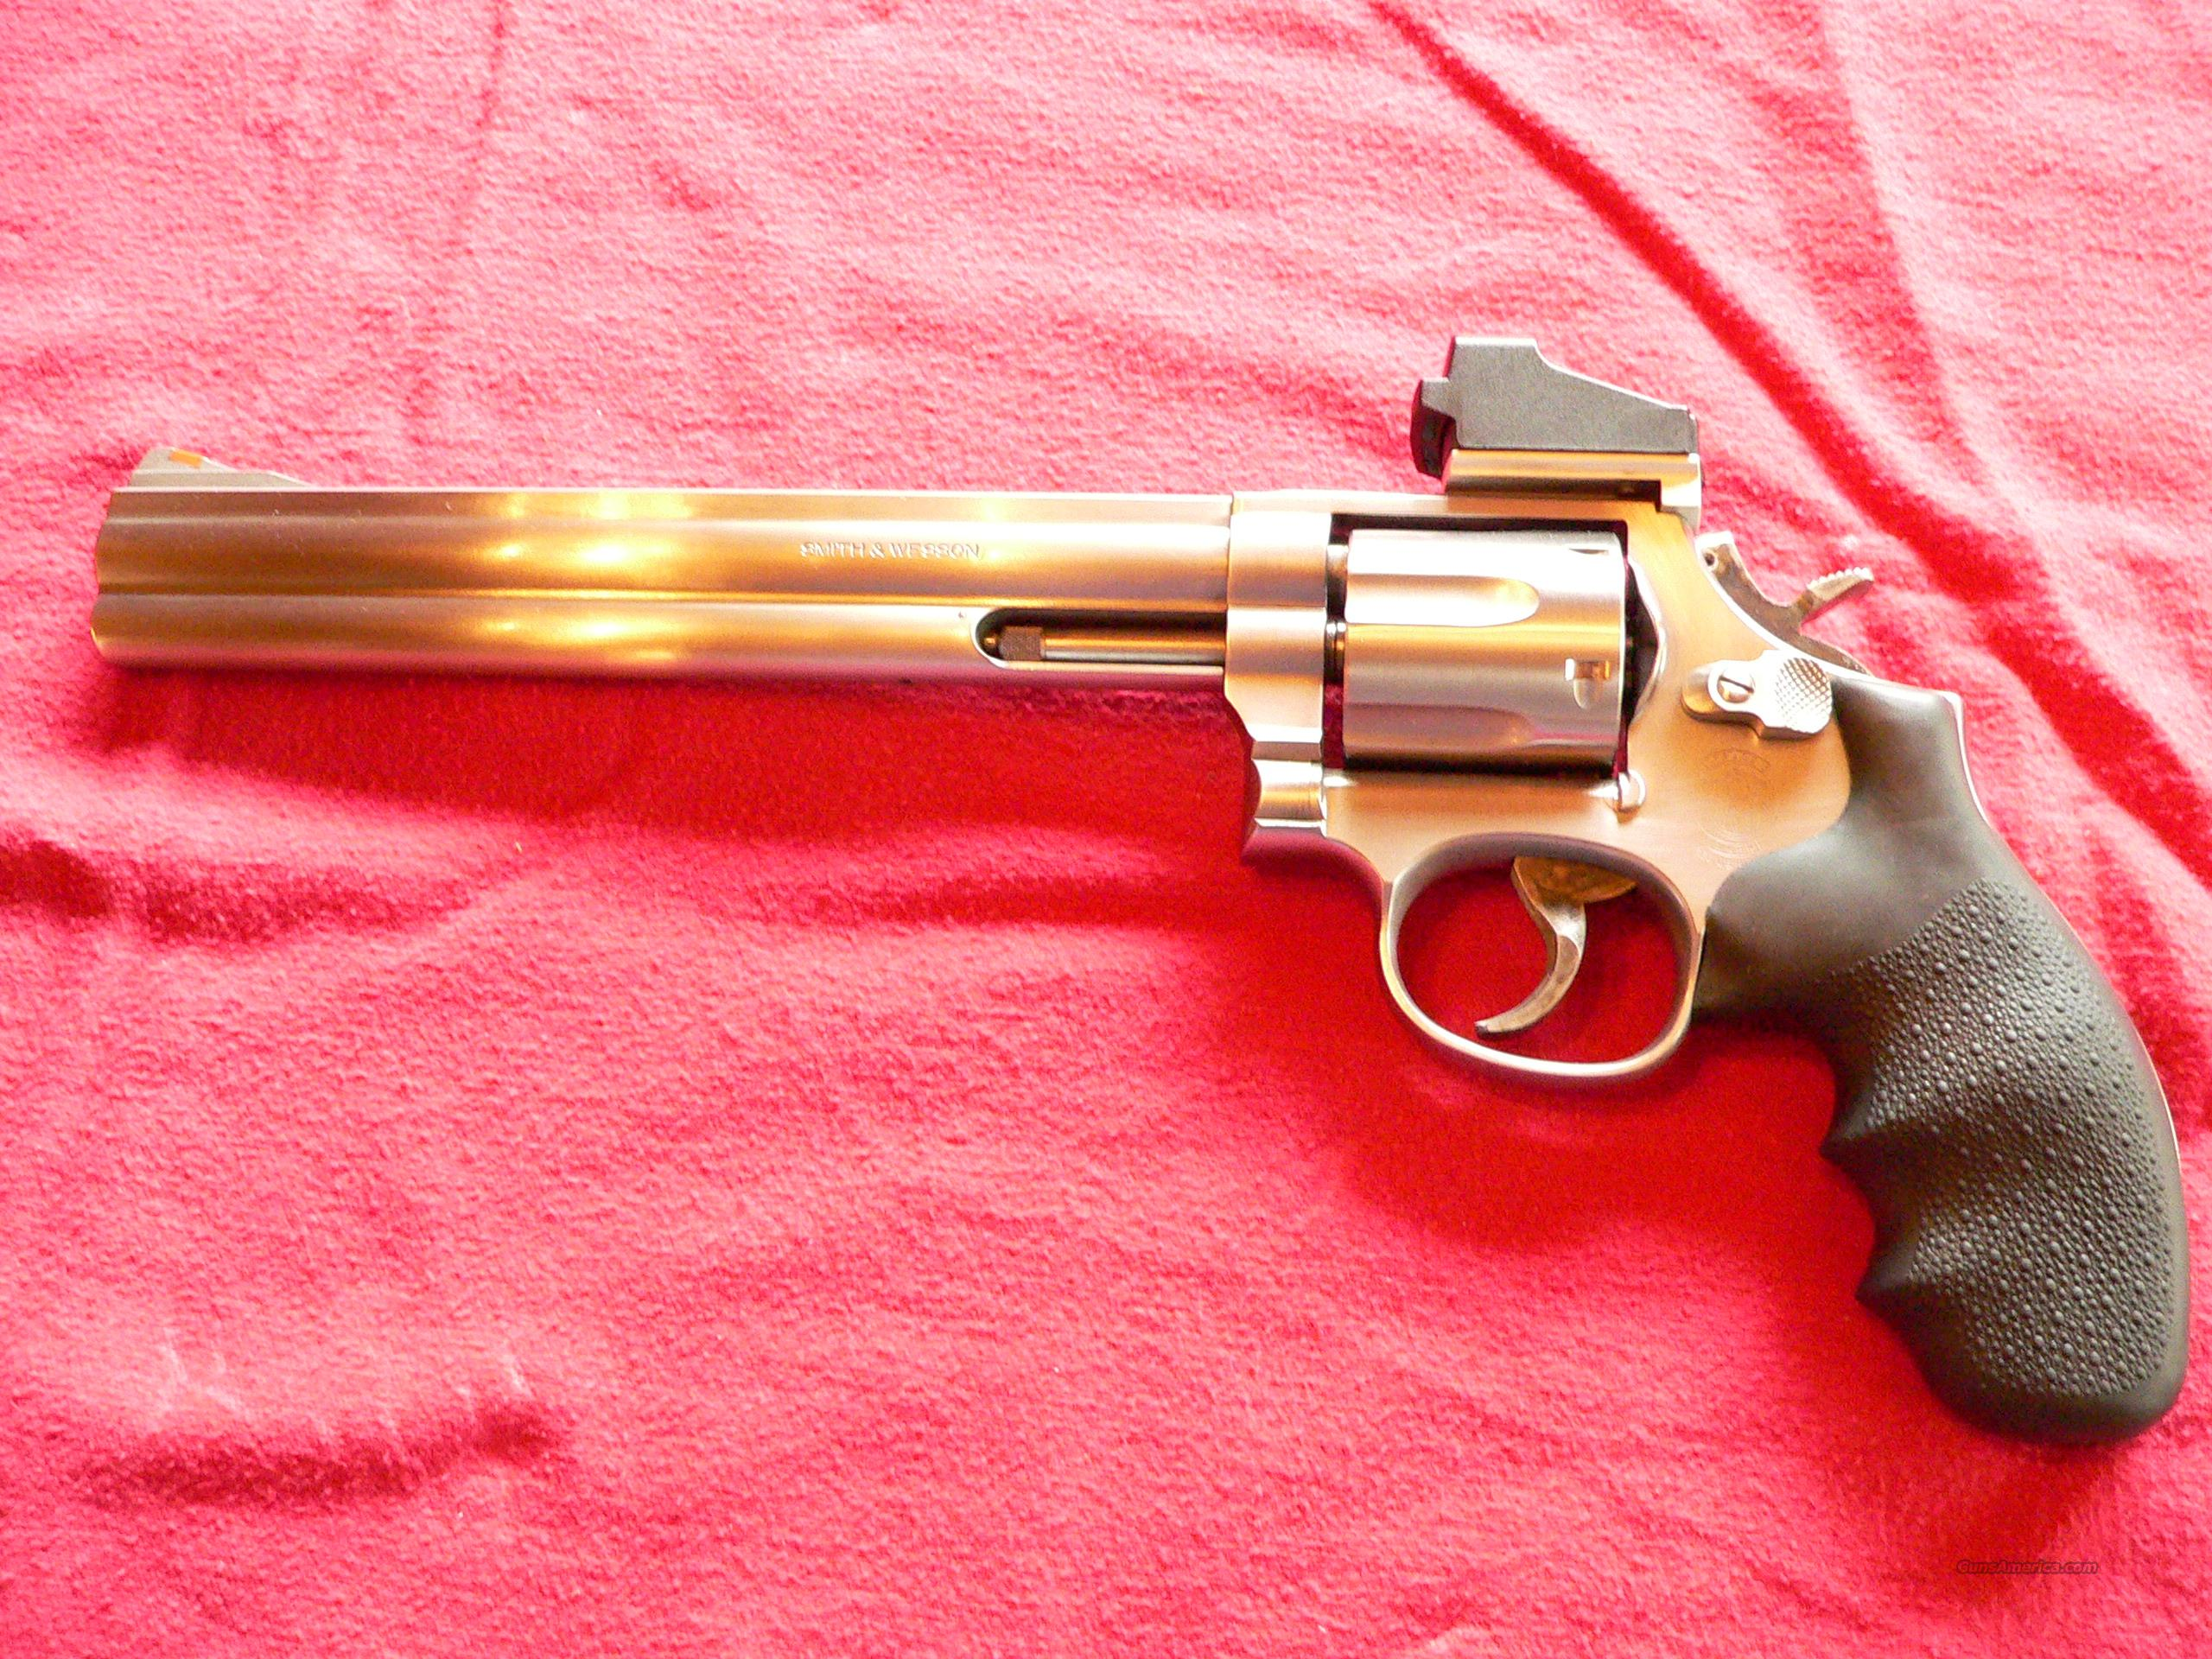 REDUCED Smith & Wesson Model 686-4. cal. 357 Magnum Revolver   Guns > Pistols > Smith & Wesson Revolvers > Full Frame Revolver